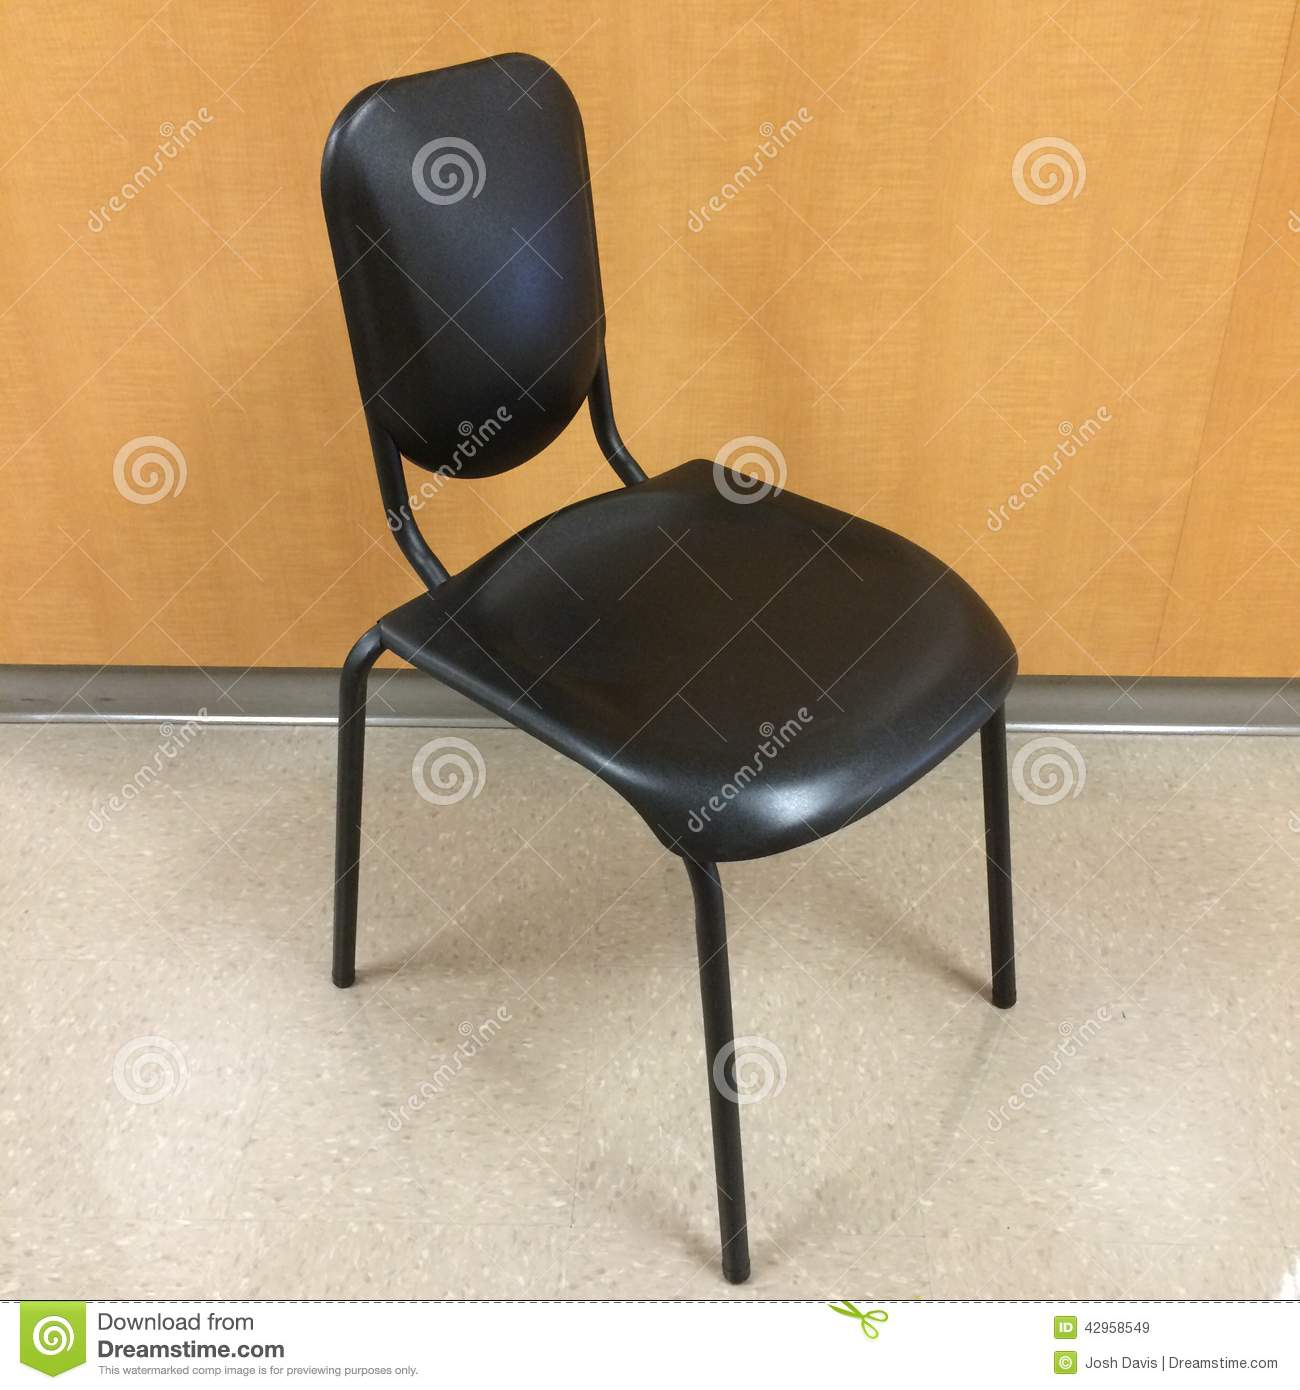 Posture Chair Stock Image